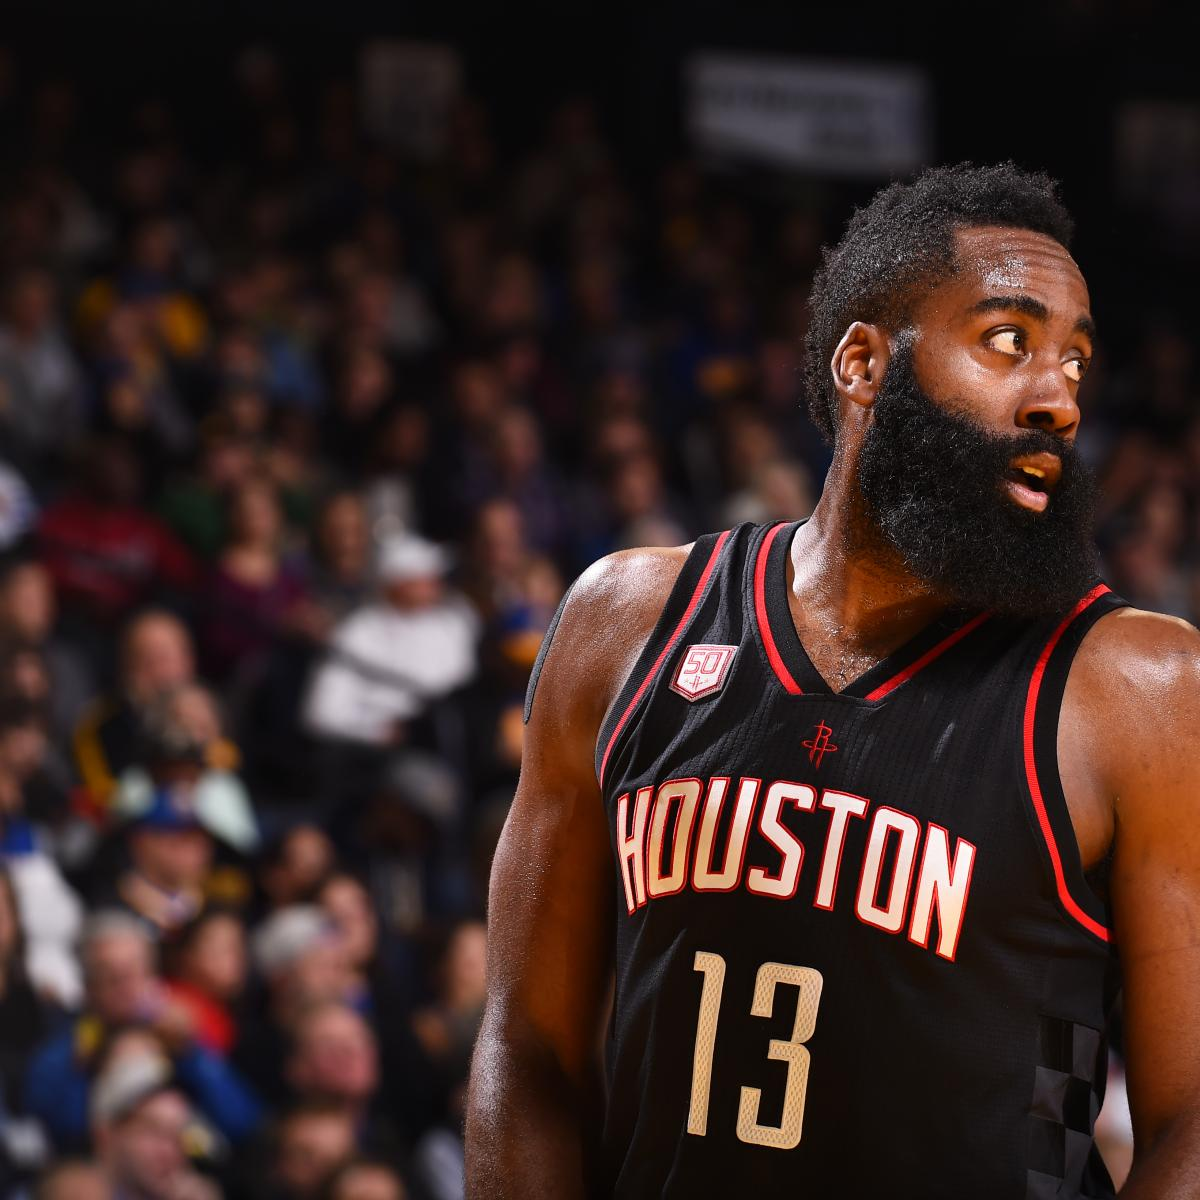 Houston Rockets Vs. Denver Nuggets: Live Score, Highlights